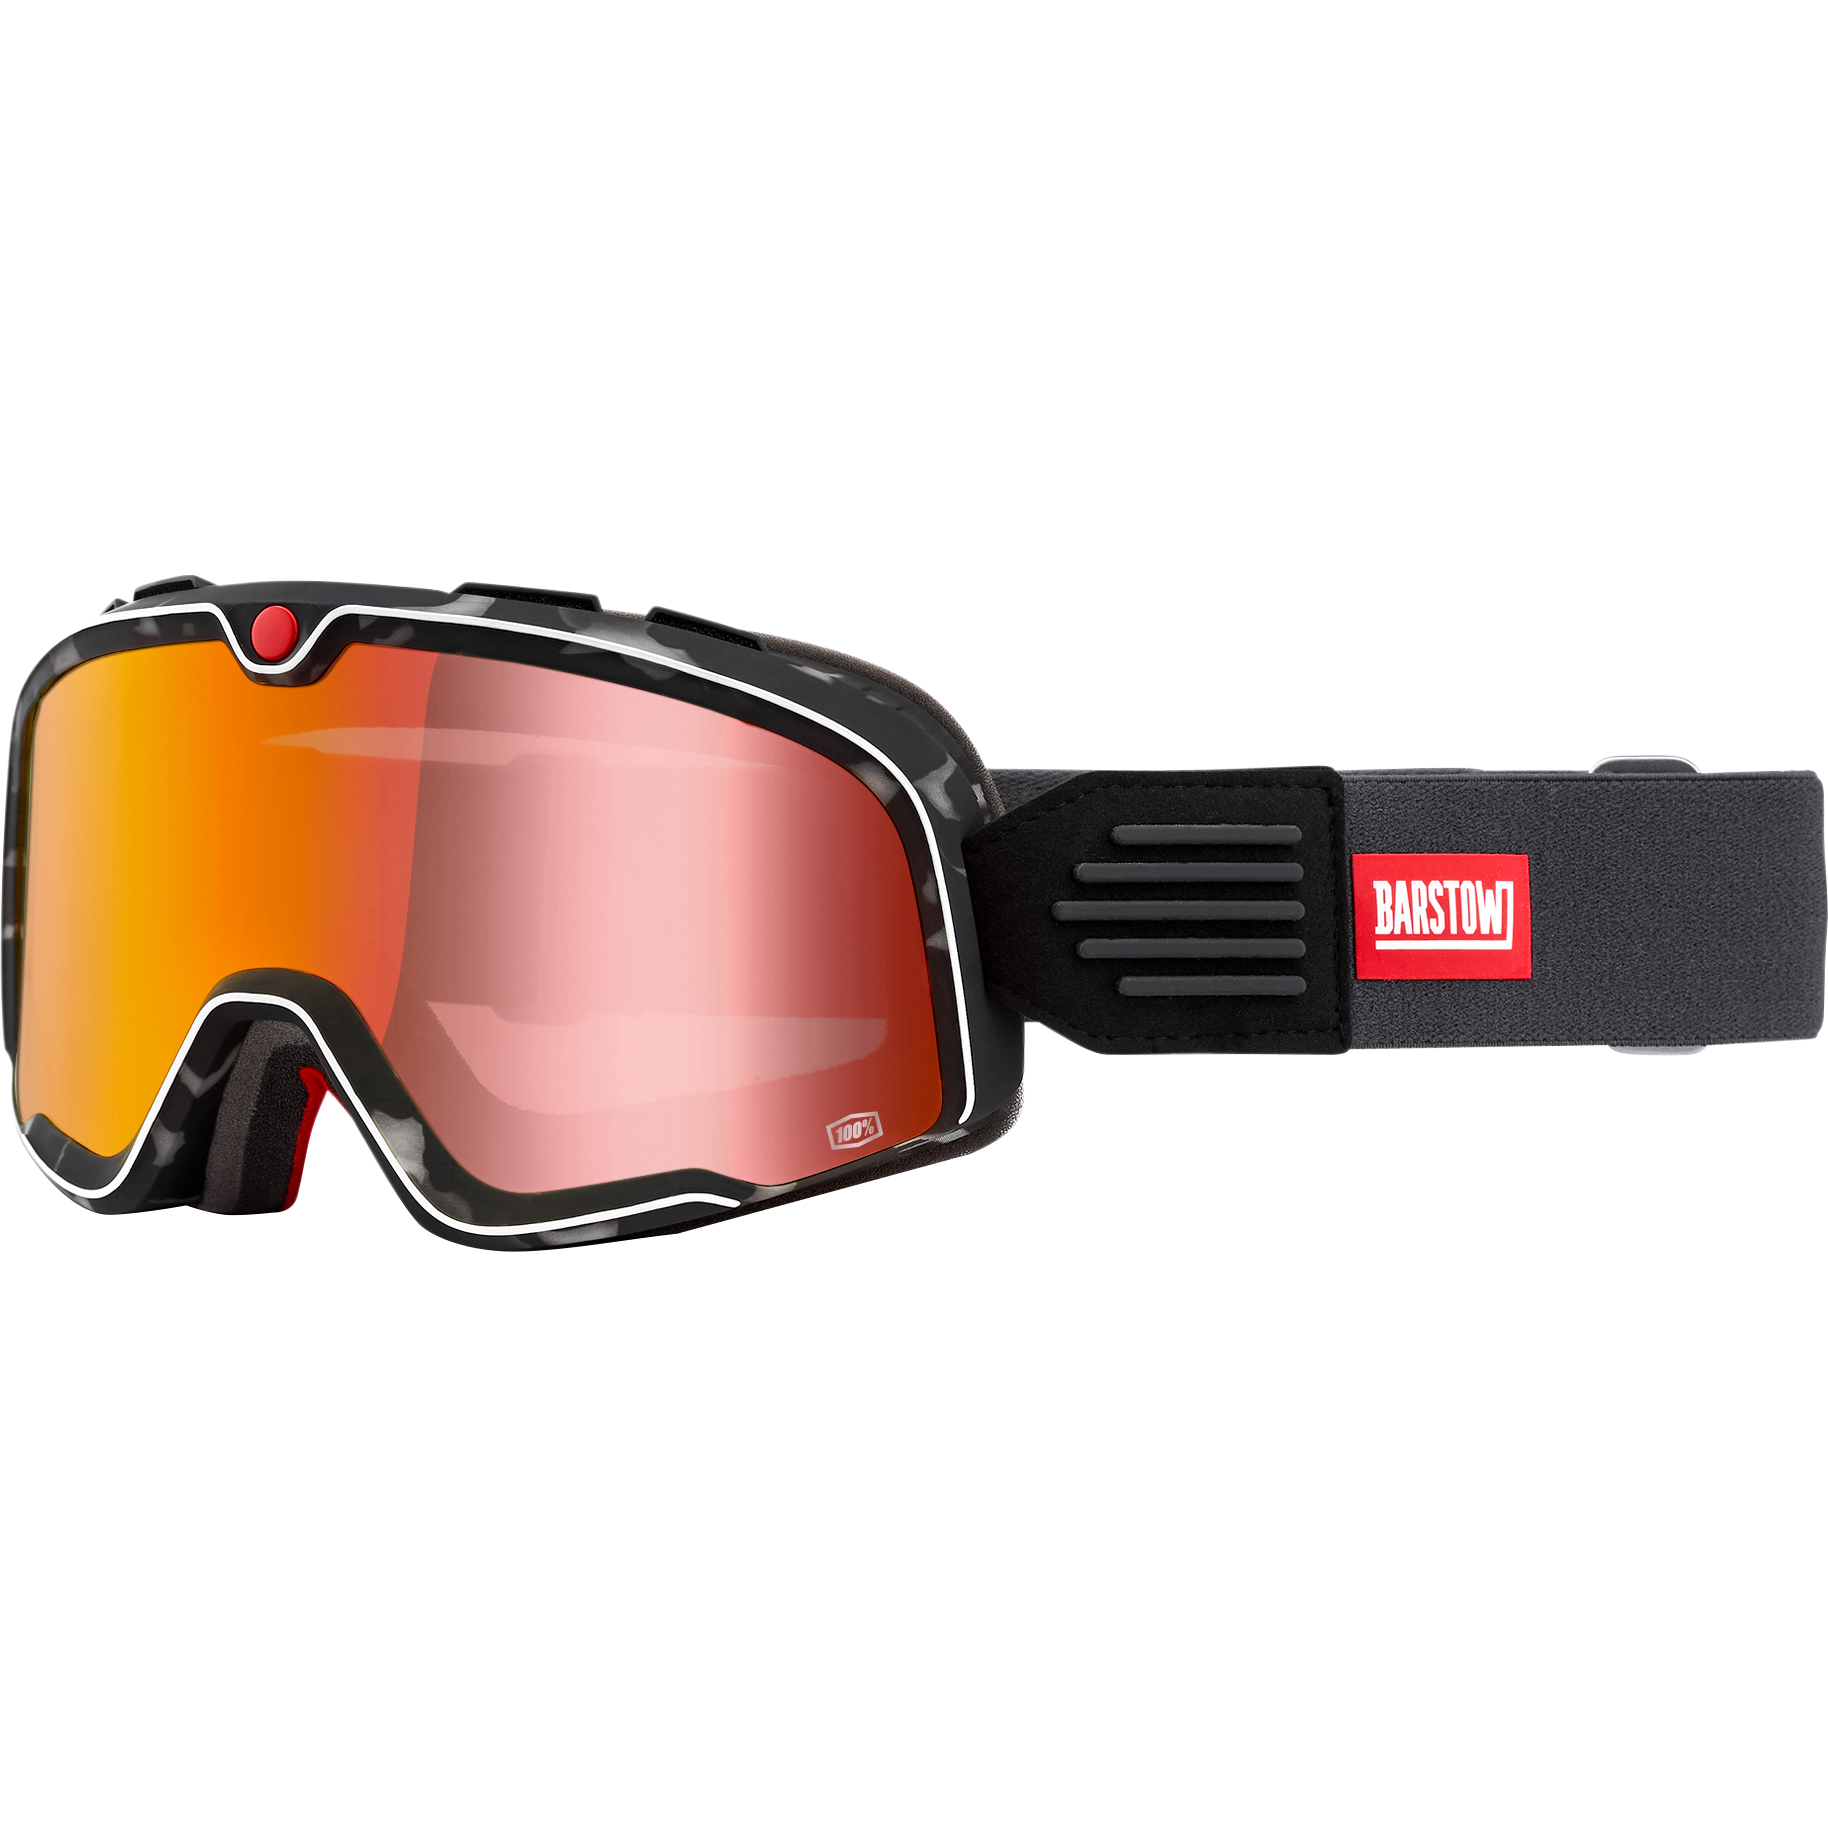 Image of 100% Barstow Crossbrille rot